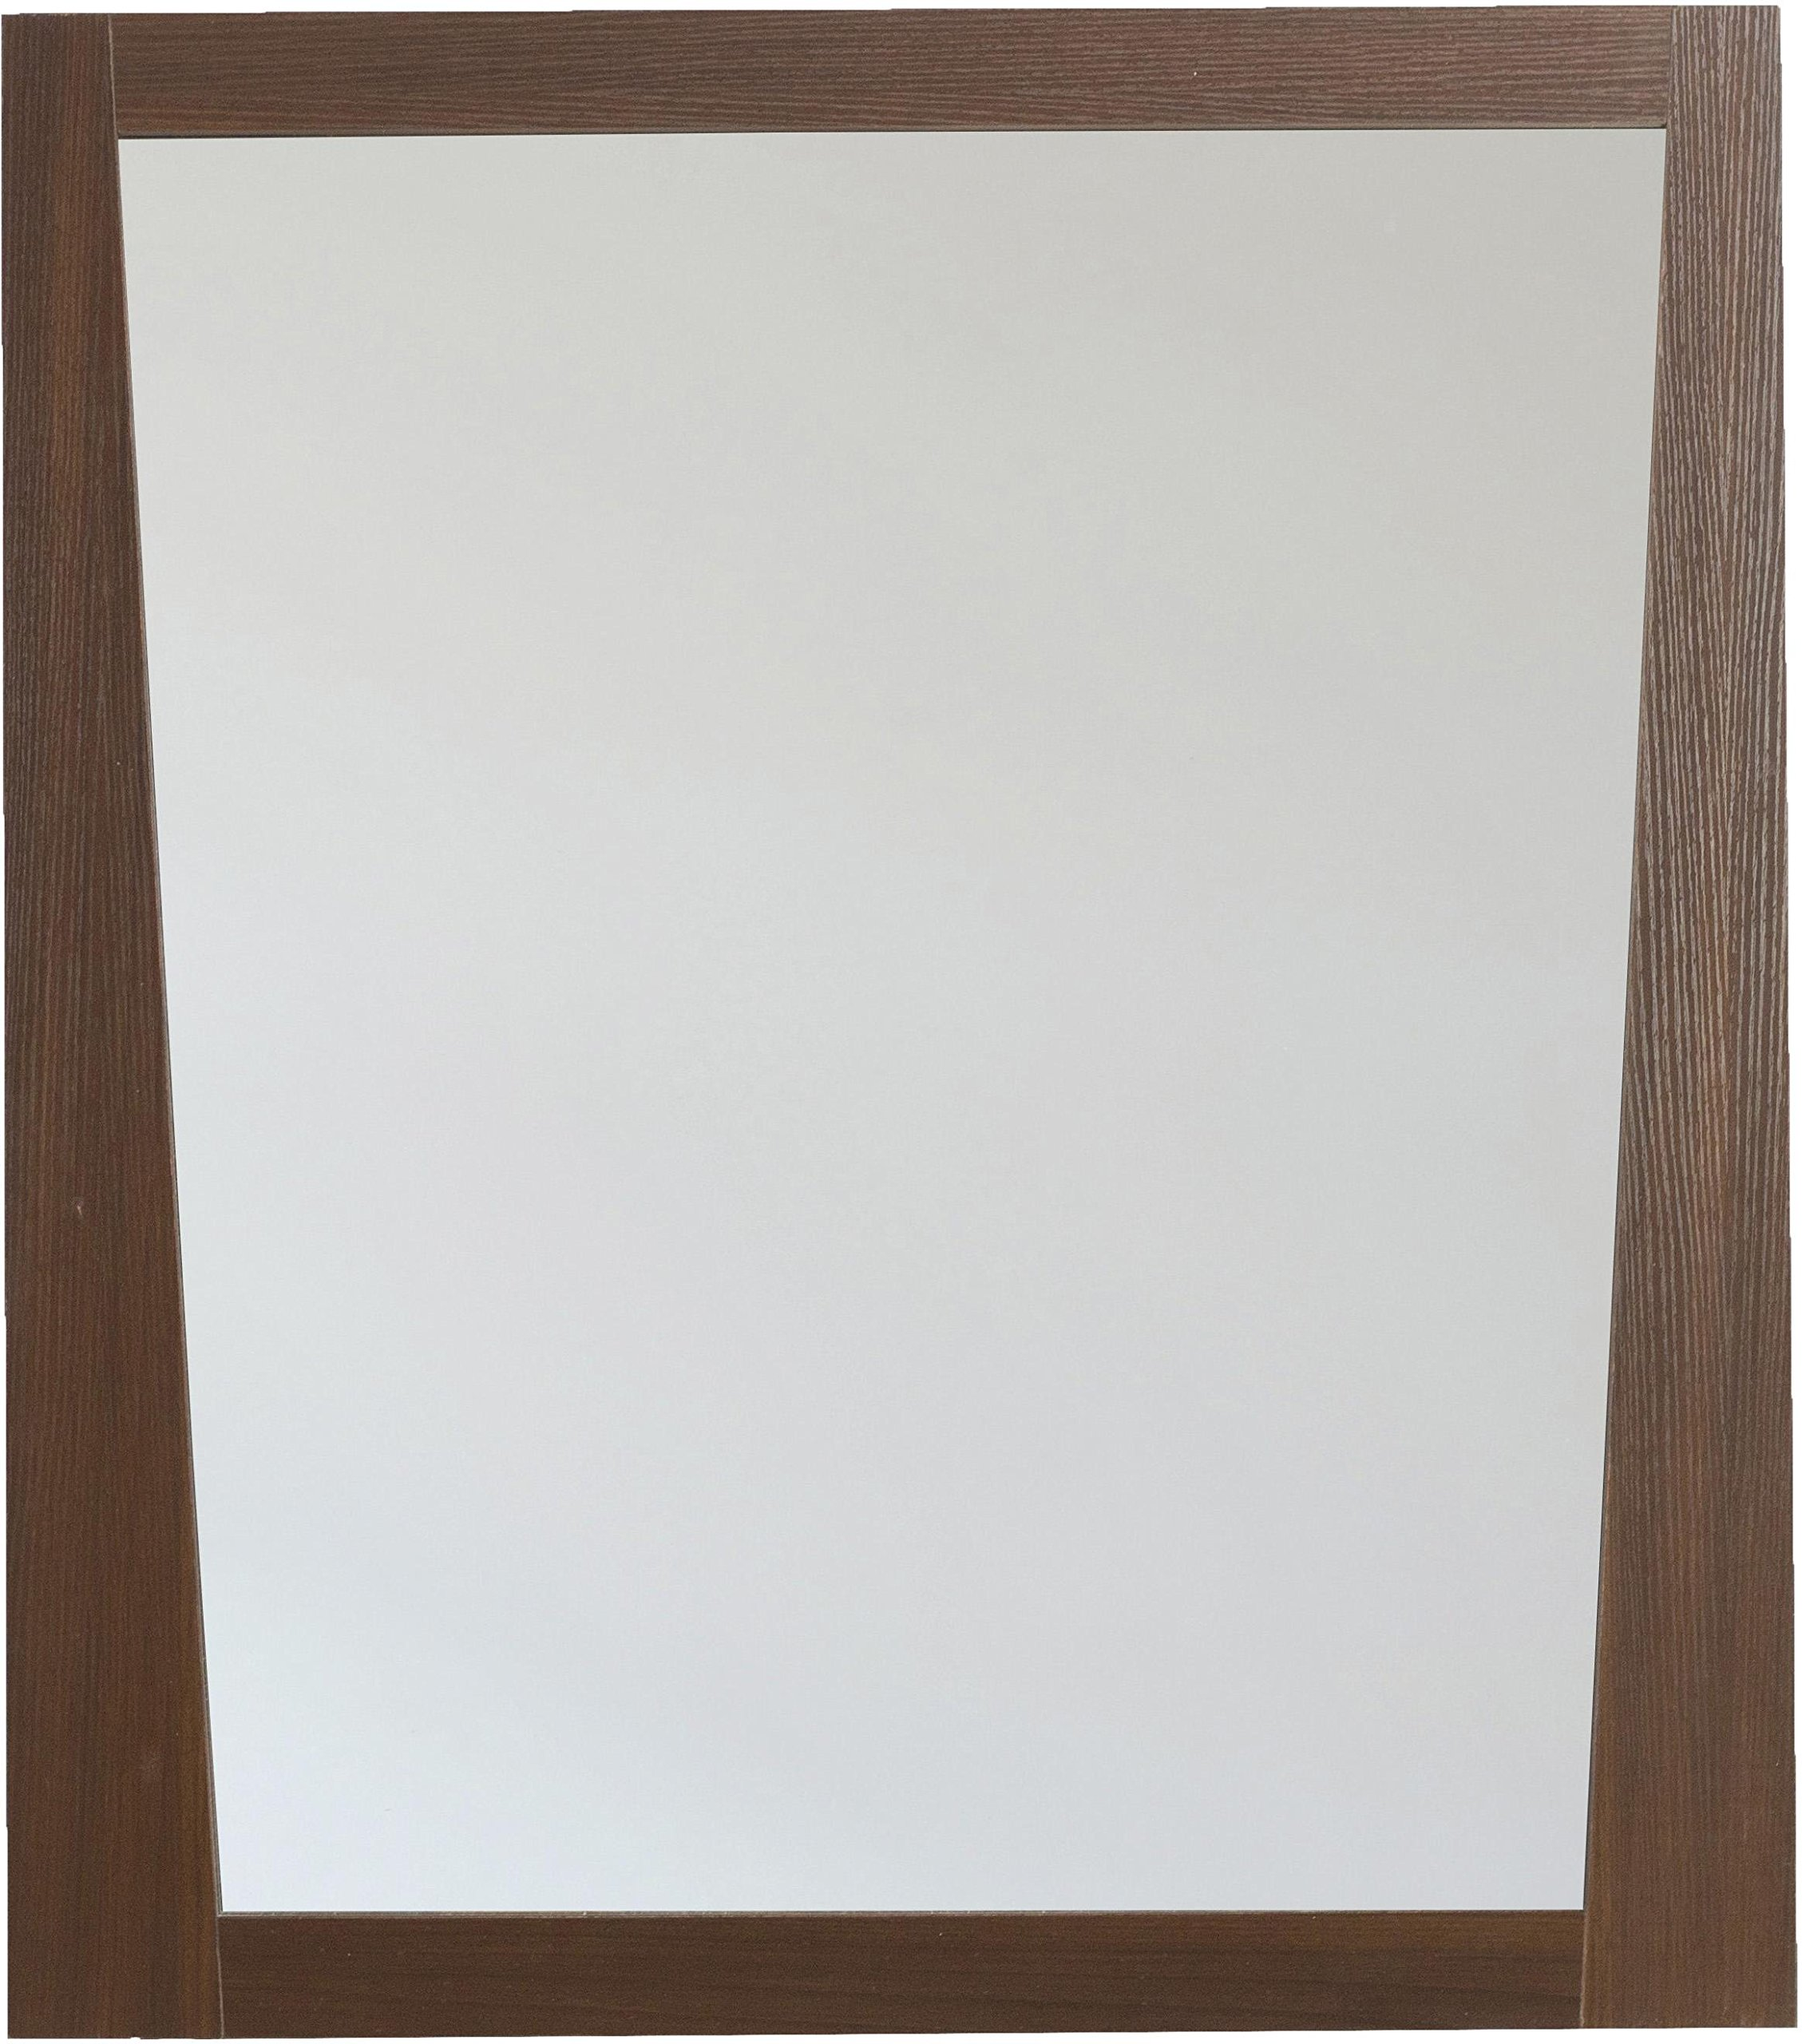 American Imaginations AI-5-1184 Modern Plywood-Melamine Wood Mirror, 28-Inch x 34-Inch, Wenge Finish